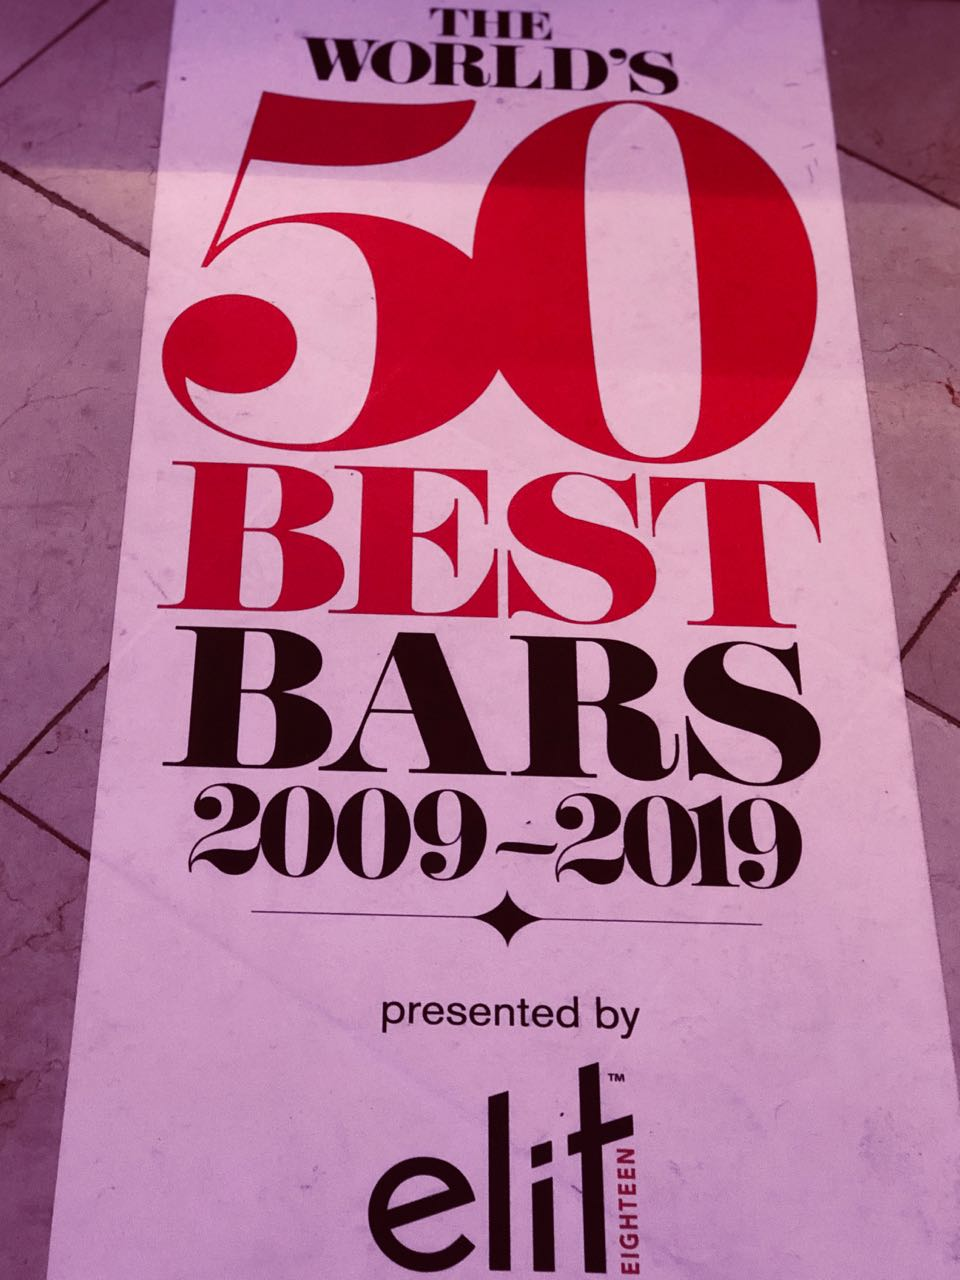 We Celebrate The World's 50 Best Bars For Drinking Destinations